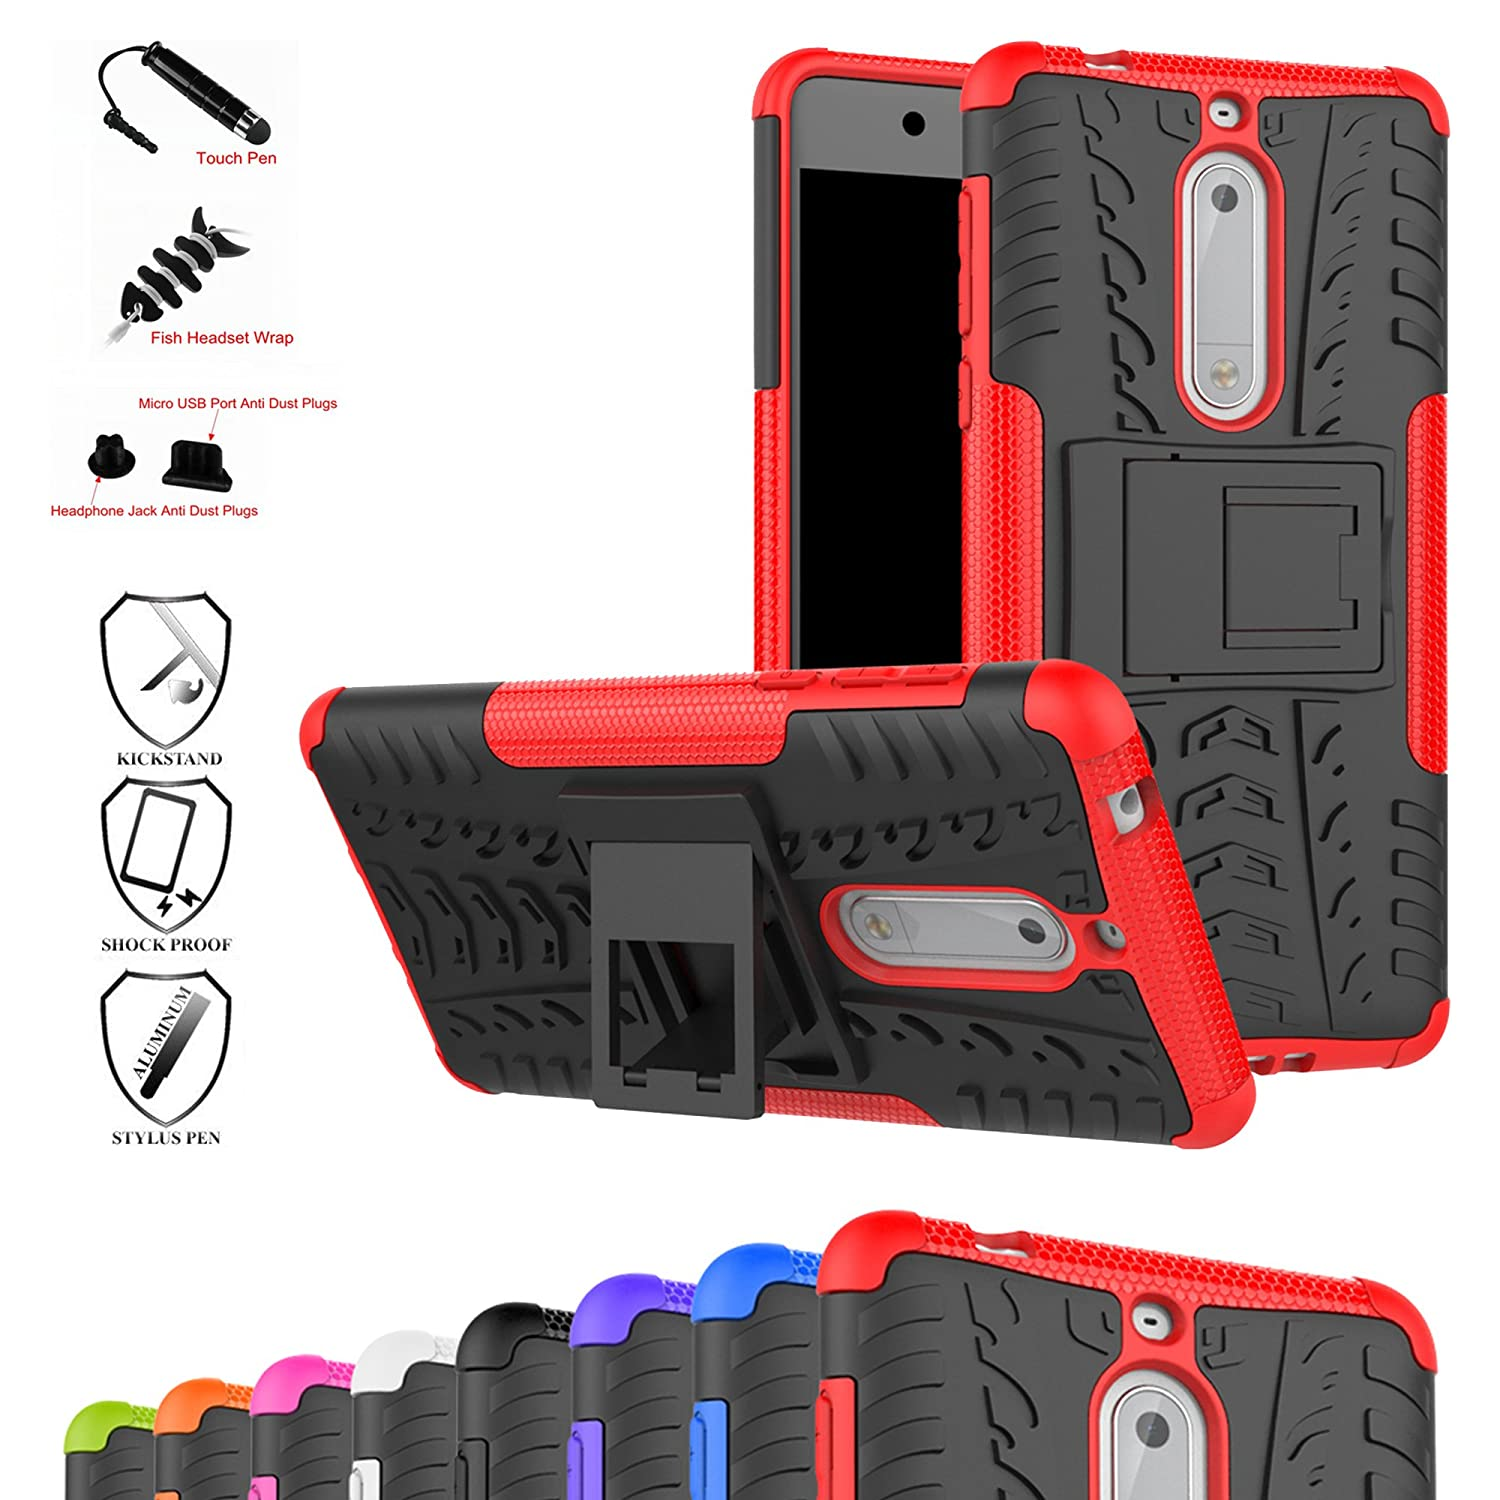 Nokia 5 Case, Mama Mouth Shockproof Heavy Duty Combo Hybrid Rugged Dual Layer Grip Cover with Kickstand for Nokia 5 5.2 inch 2017 (with 4 in 1 Packaged), Red Bigmouthstore